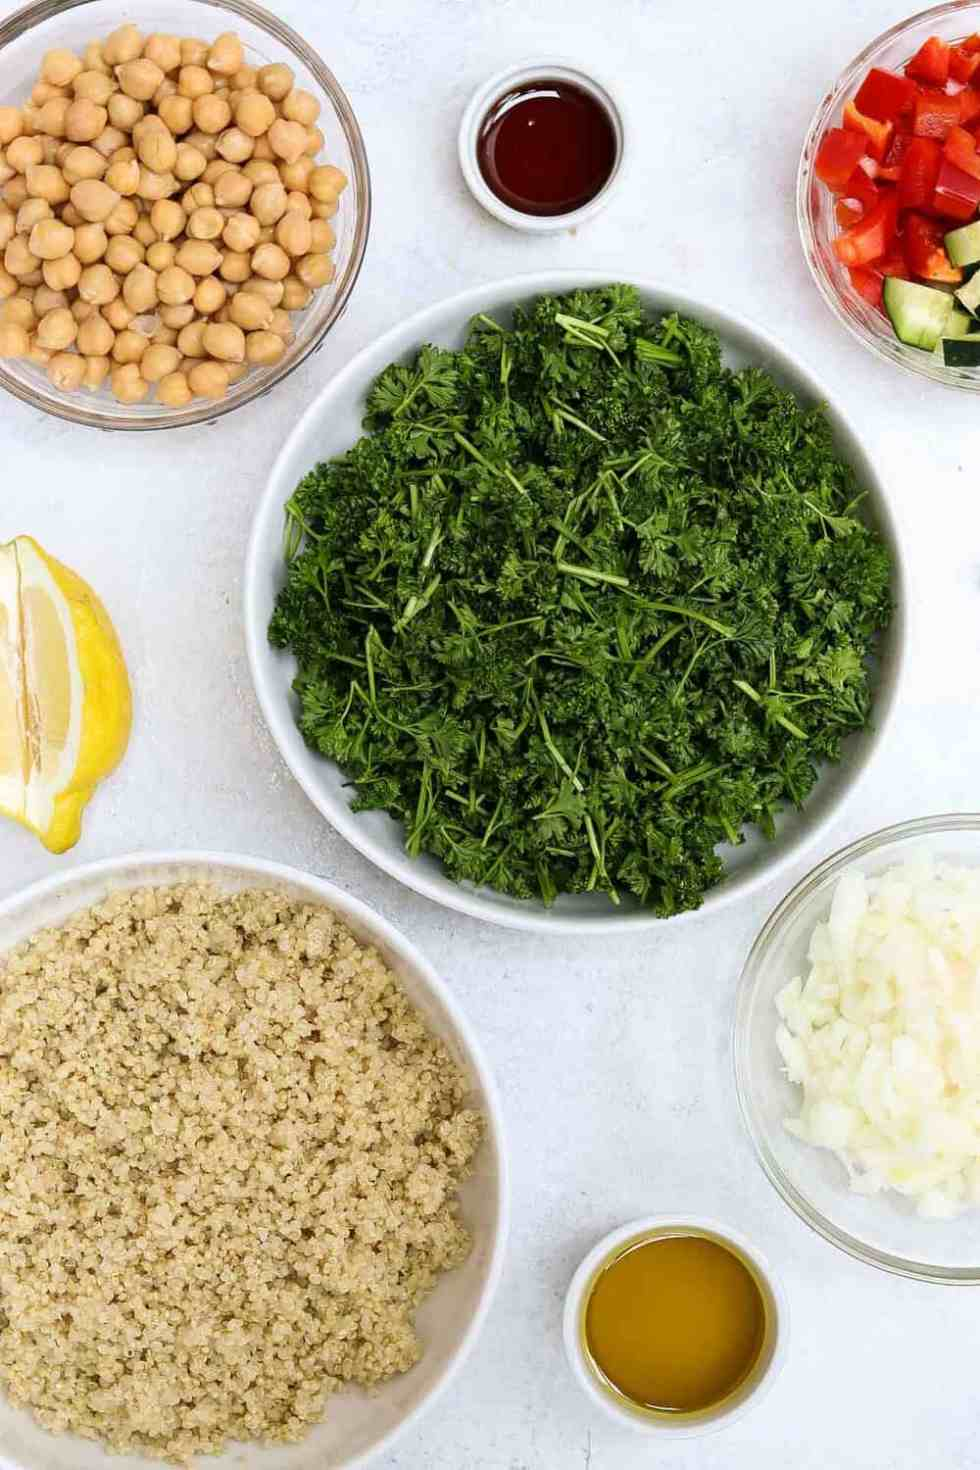 Ingredients lined up in white and clear bowls for the quinoa tabbouleh salad.